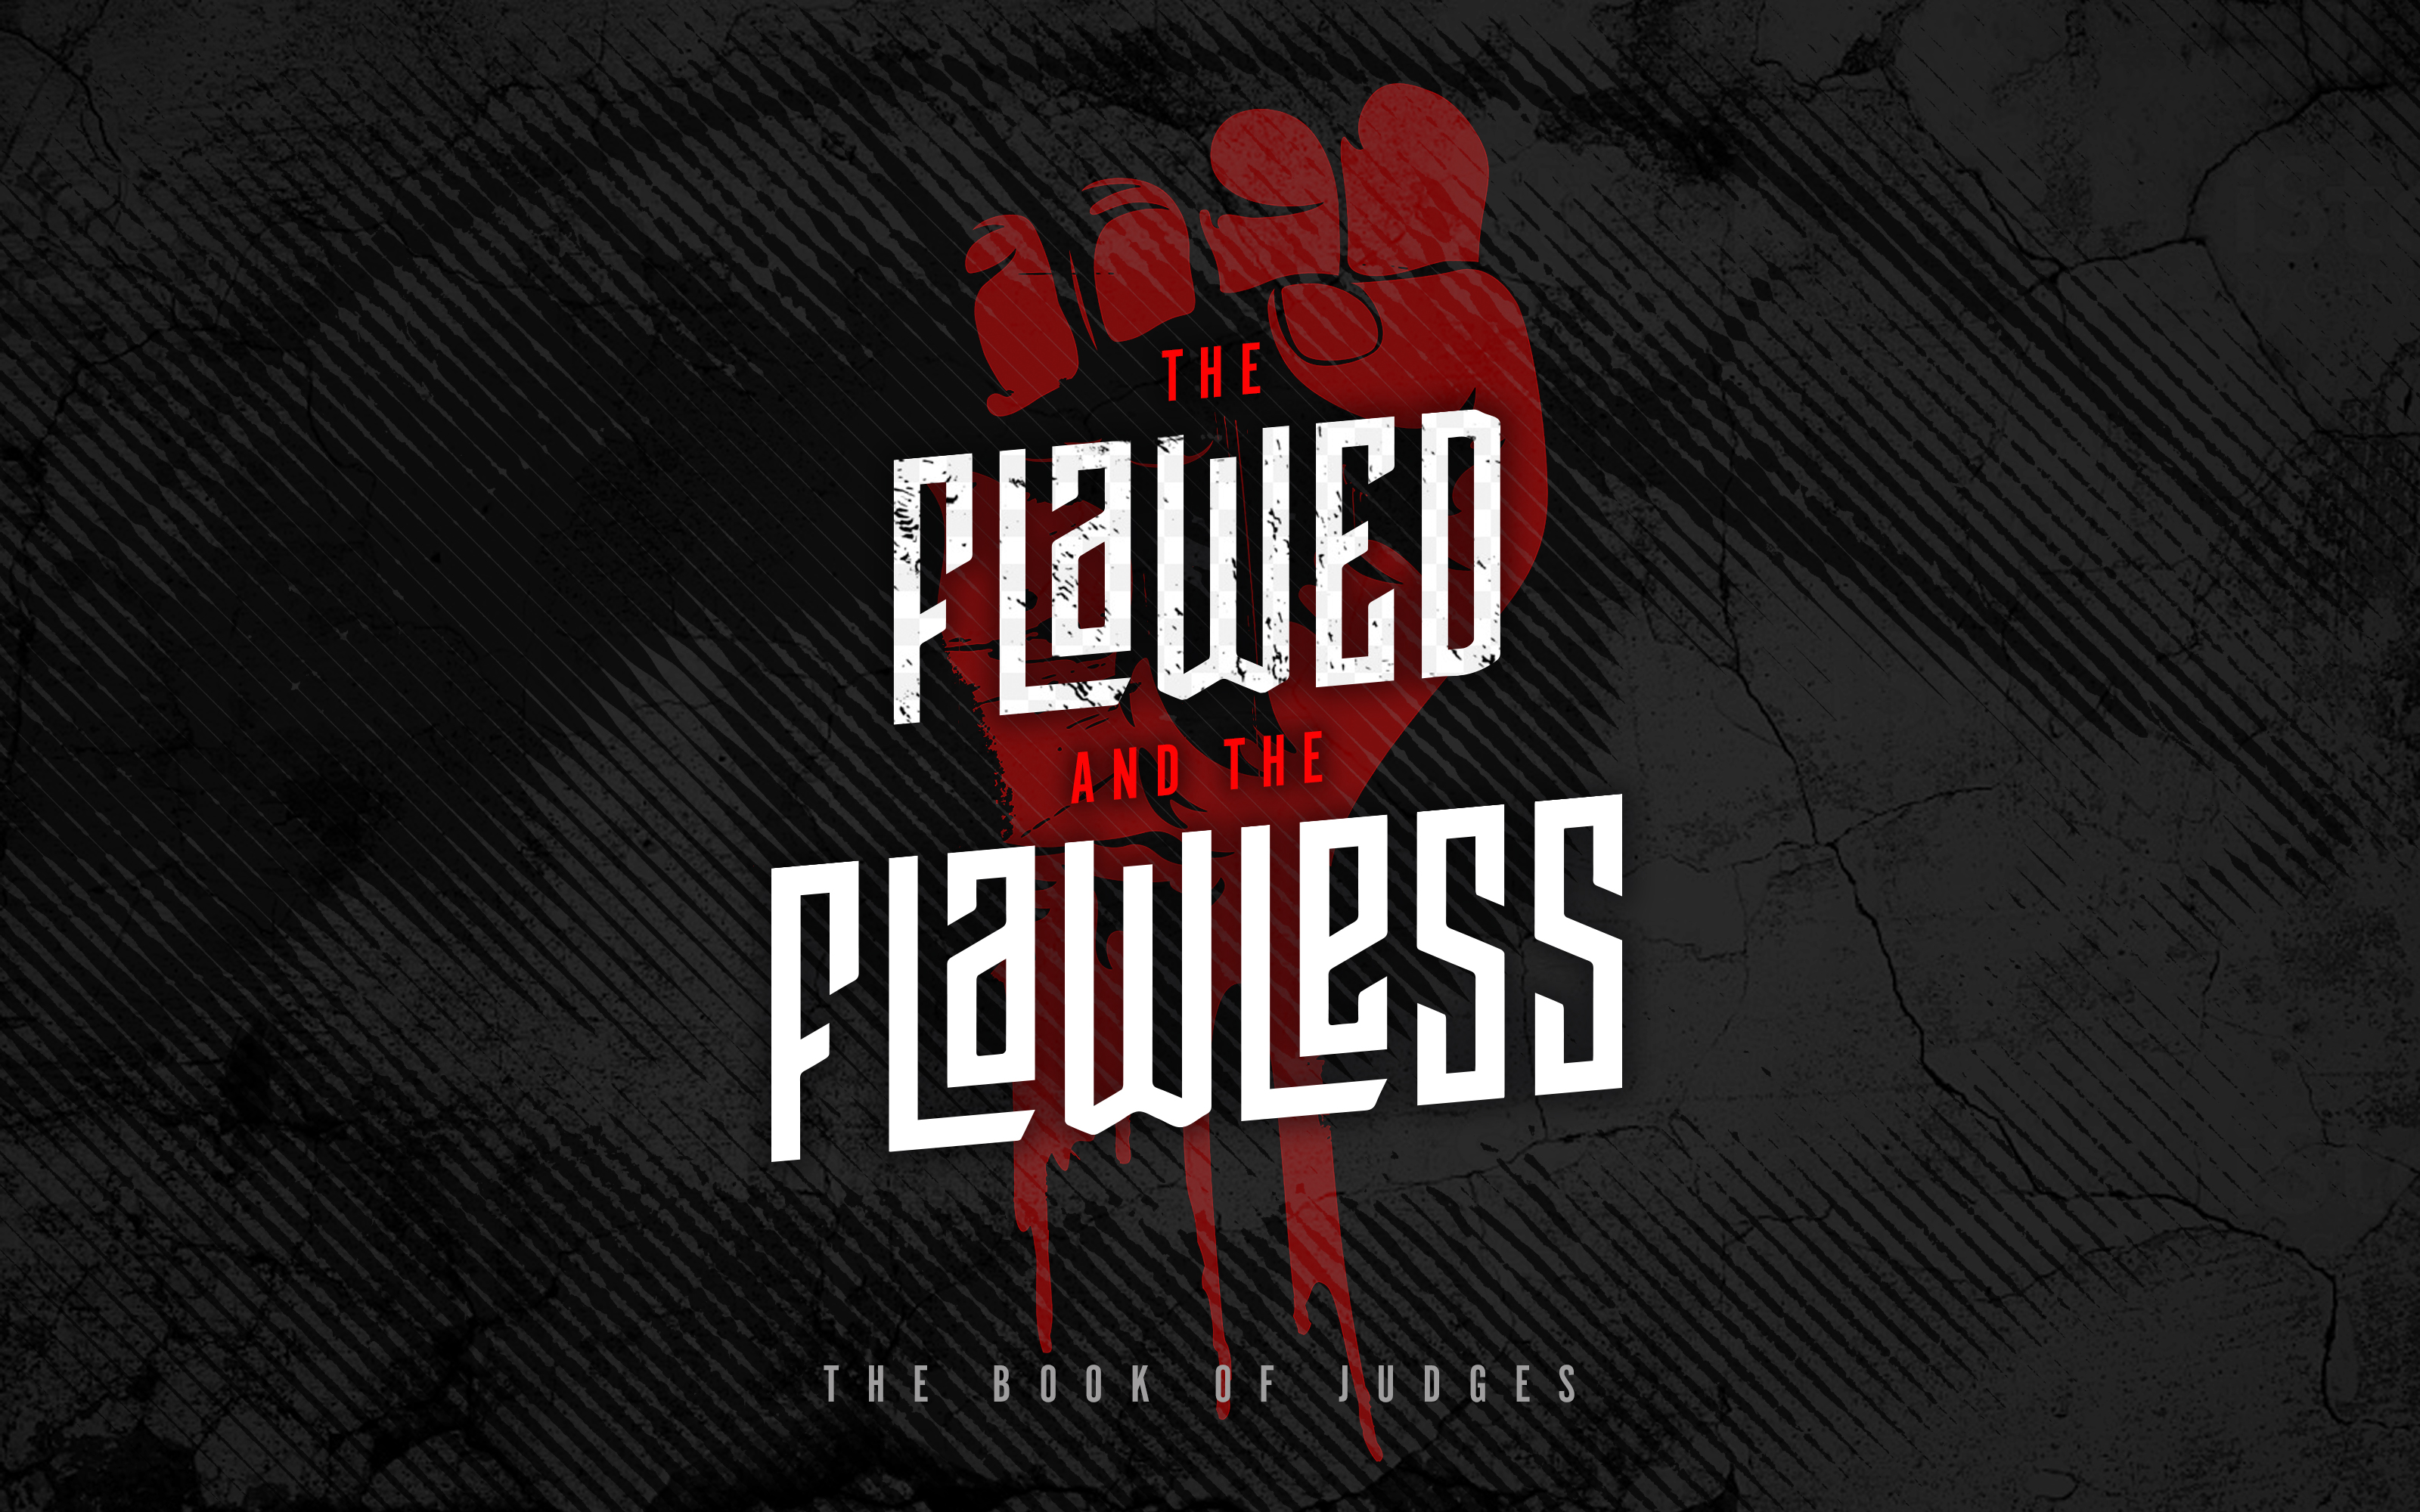 The Flawed And The Flawless - JUDGES - People without a King